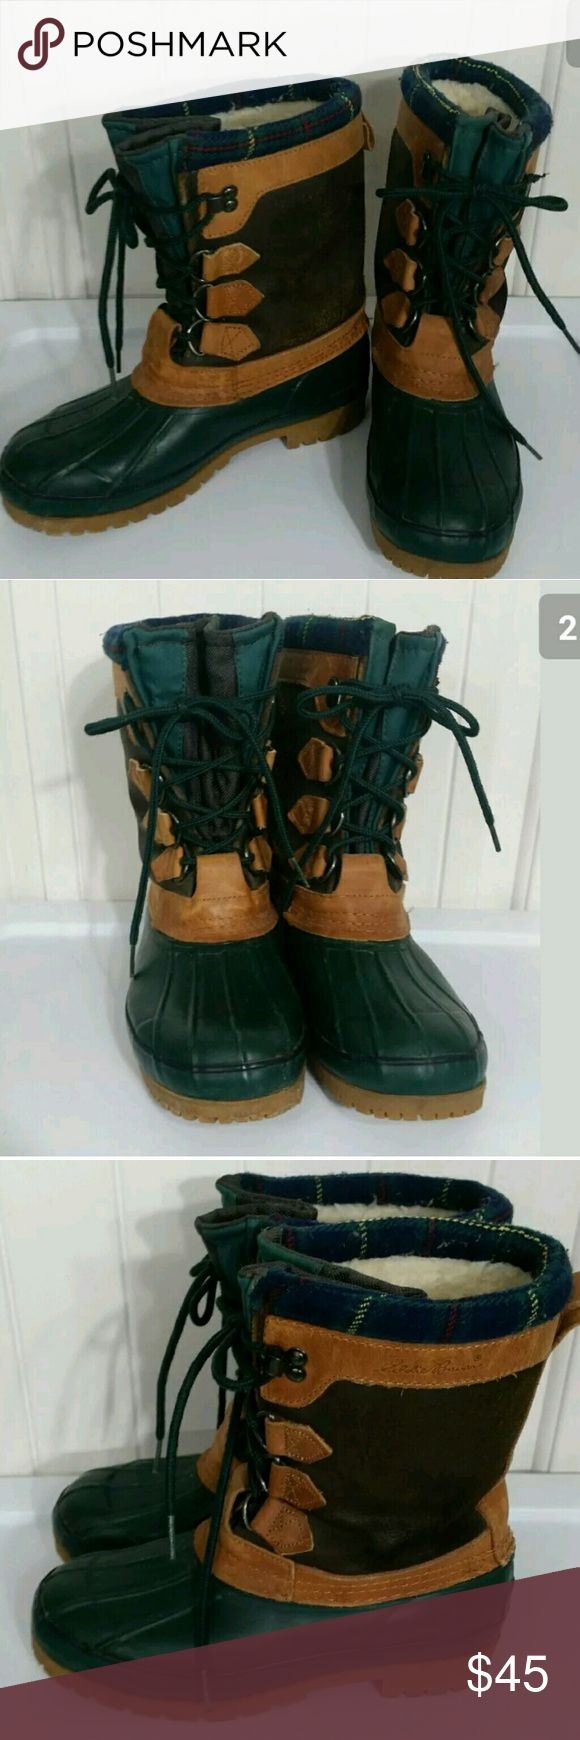 Vintage women's duck Bean boots Eddie Bauer Sz 7 Vintage Duck Bean Boots Womens Eddie Bauer Brown Leather Green Rubber Hunting Rain Shoes Size 7 - EXCELLENT PREOWNED CONDITION, SUPER MINIMAL USE, IF ANY!  Type: Shoes Style: Duck Waterproof Hunting Boots Brand: Eddie Bauer Size: Women's 7 Material: Leather & Rubber Color: Brown Green Condition: Excellent Preowned Condition, super minimal use!  Stock Number: 0011 Vintage Shoes Winter & Rain Boots